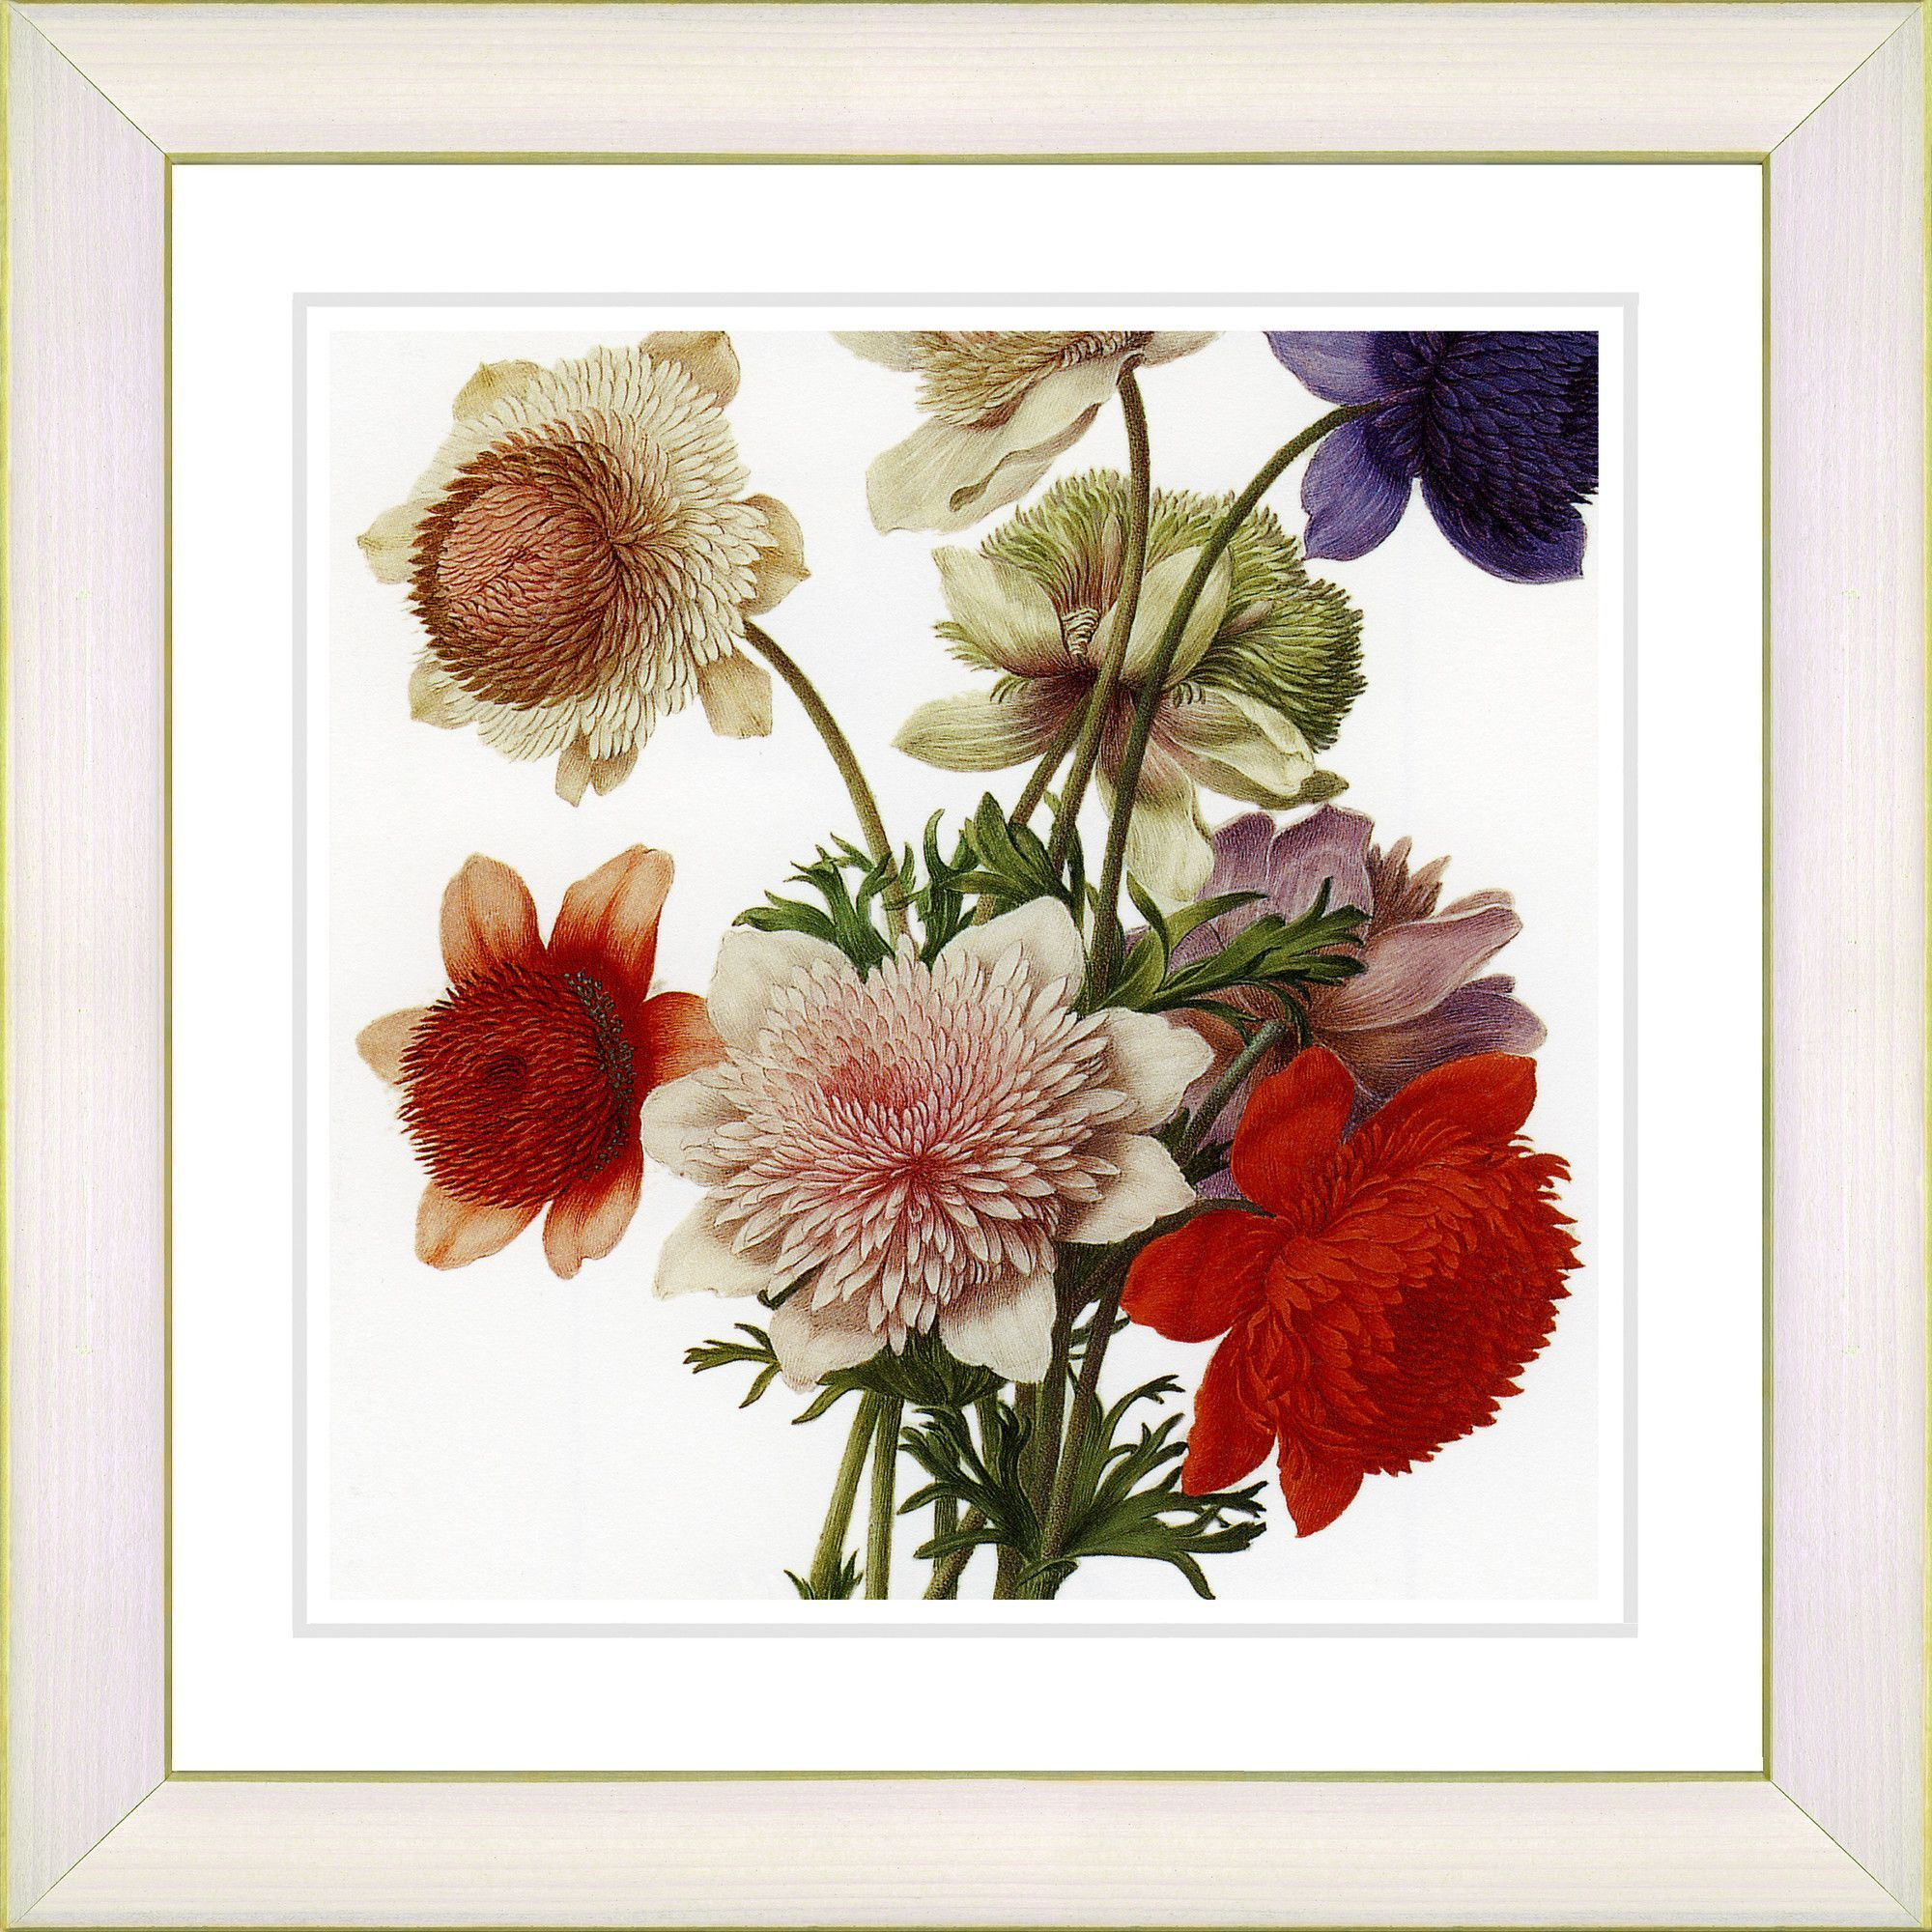 Vintage Botanical No. 20aW by Zhee Singer Framed Giclee Print Fine Wall Art